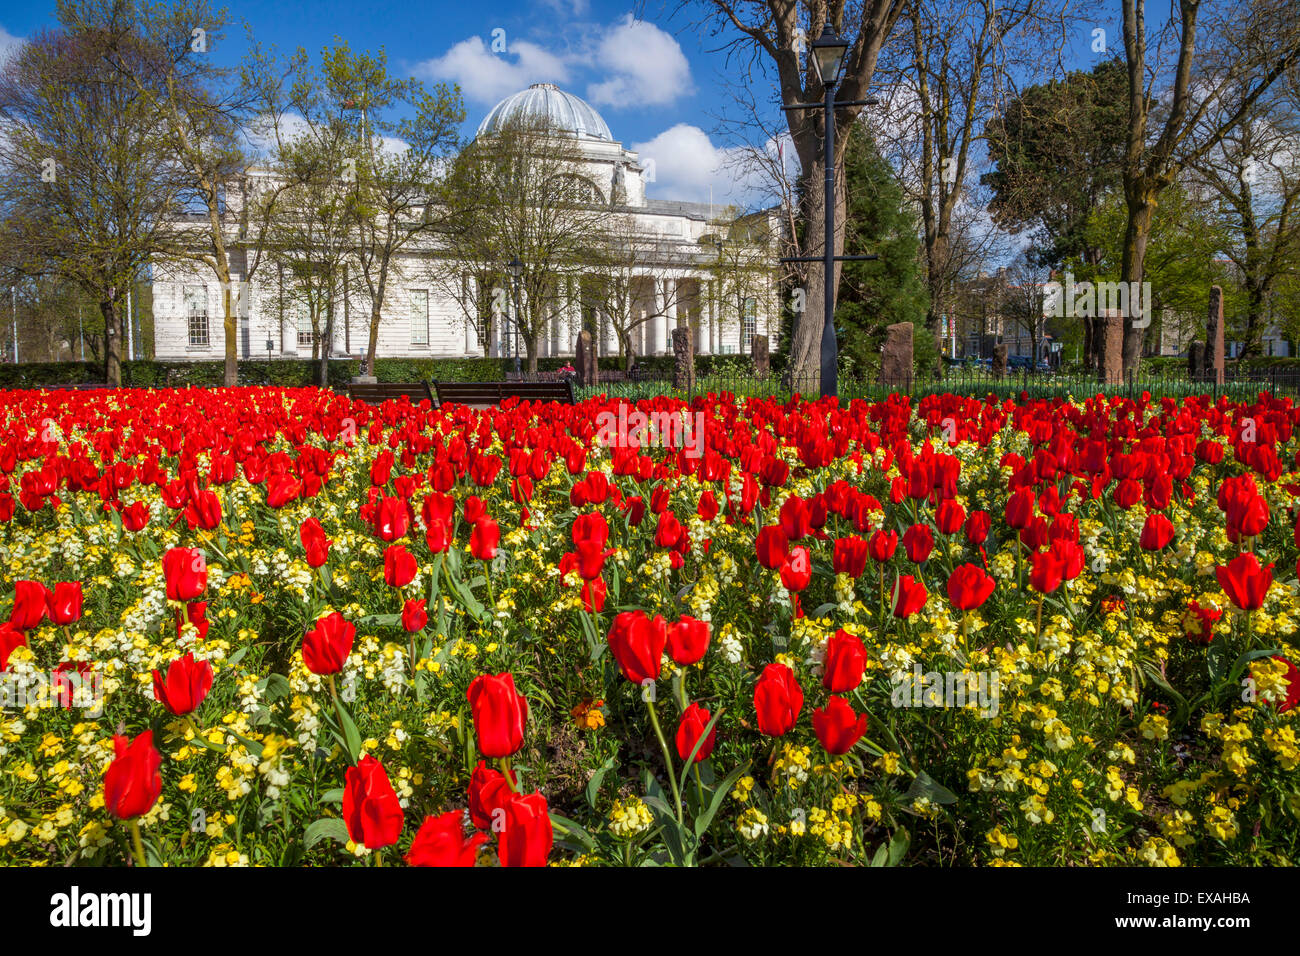 Le National Museum of Wales, Cardiff, Pays de Galles, Royaume-Uni, Europe Photo Stock